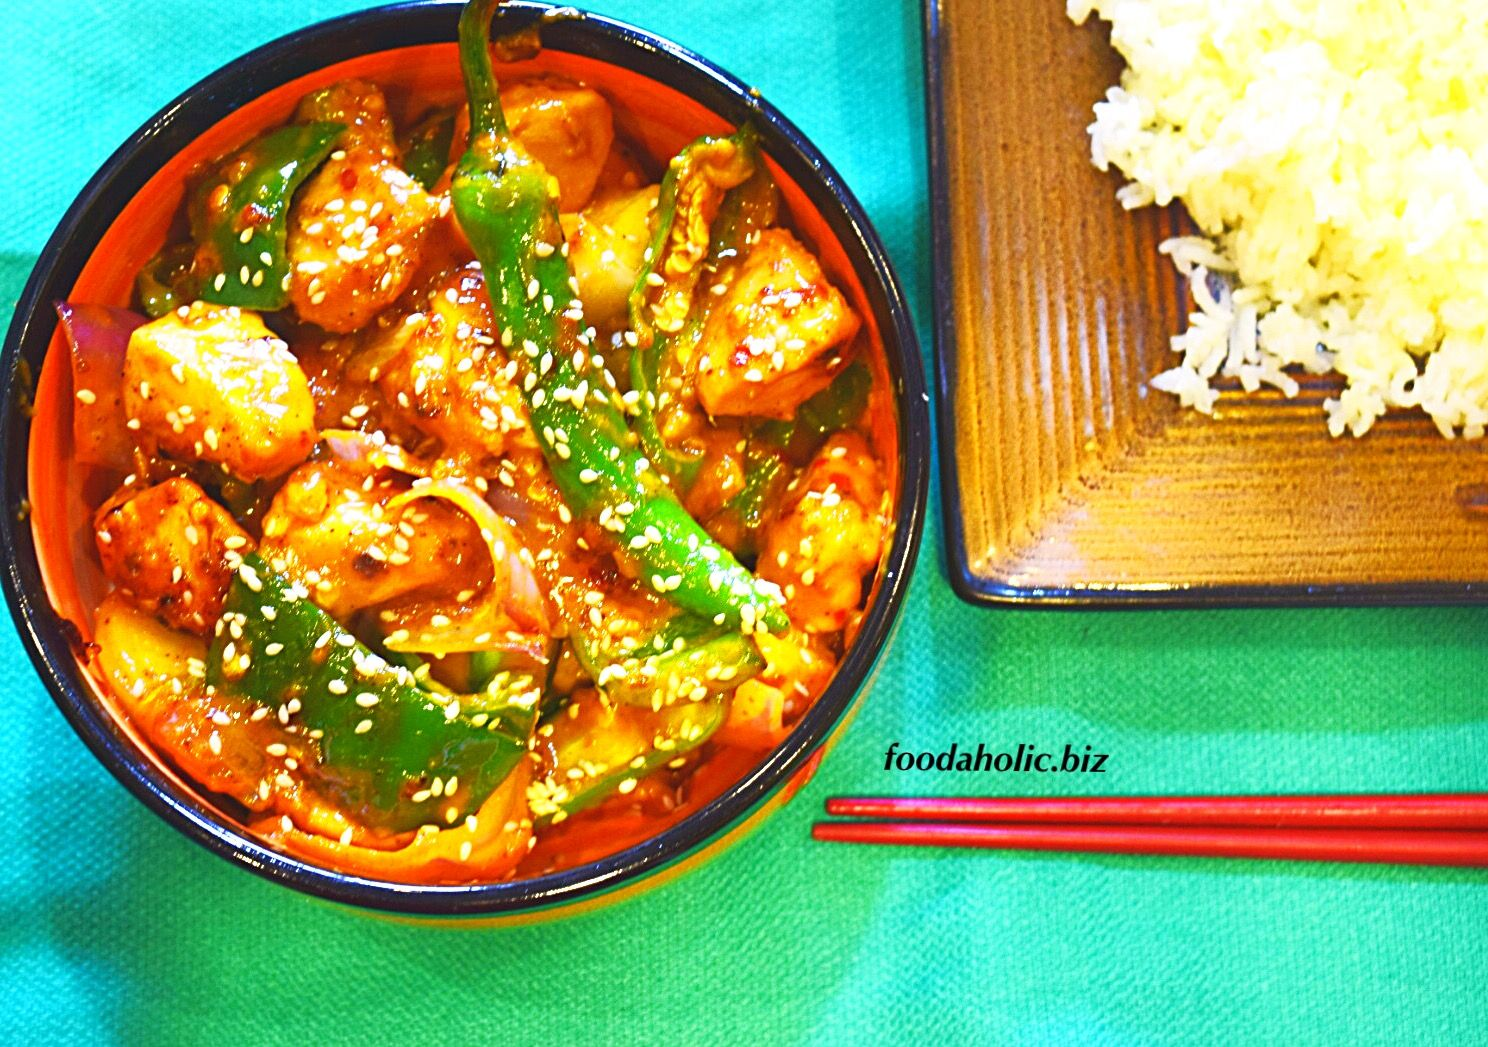 Chilli Chicken Dry Recipe | Stuffed peppers, Food recipes ...